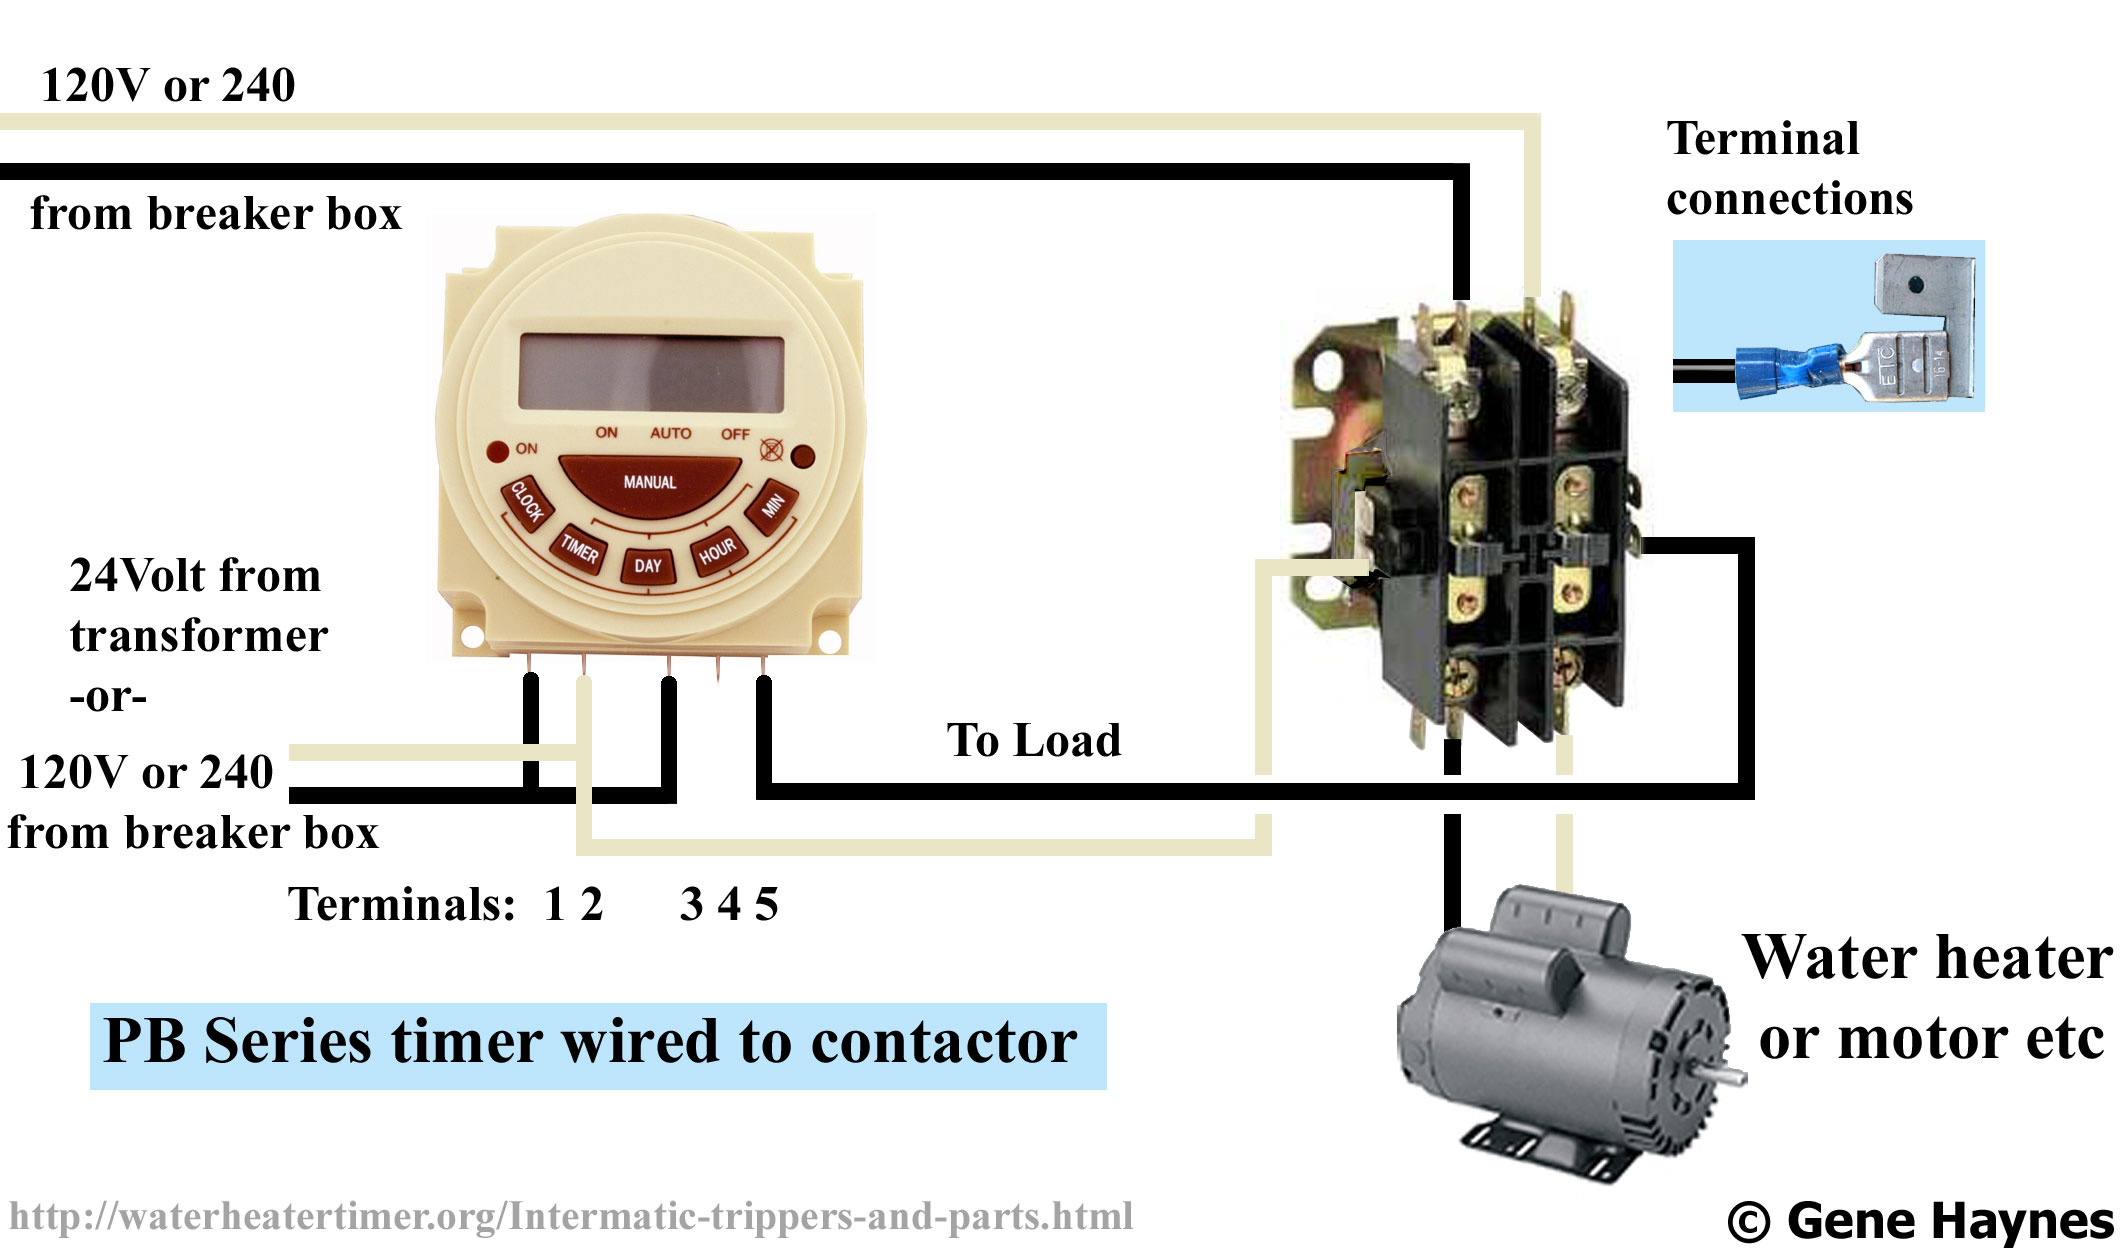 PB 300 series timer wiring motor large contactors no nc contactor wiring diagram at crackthecode.co